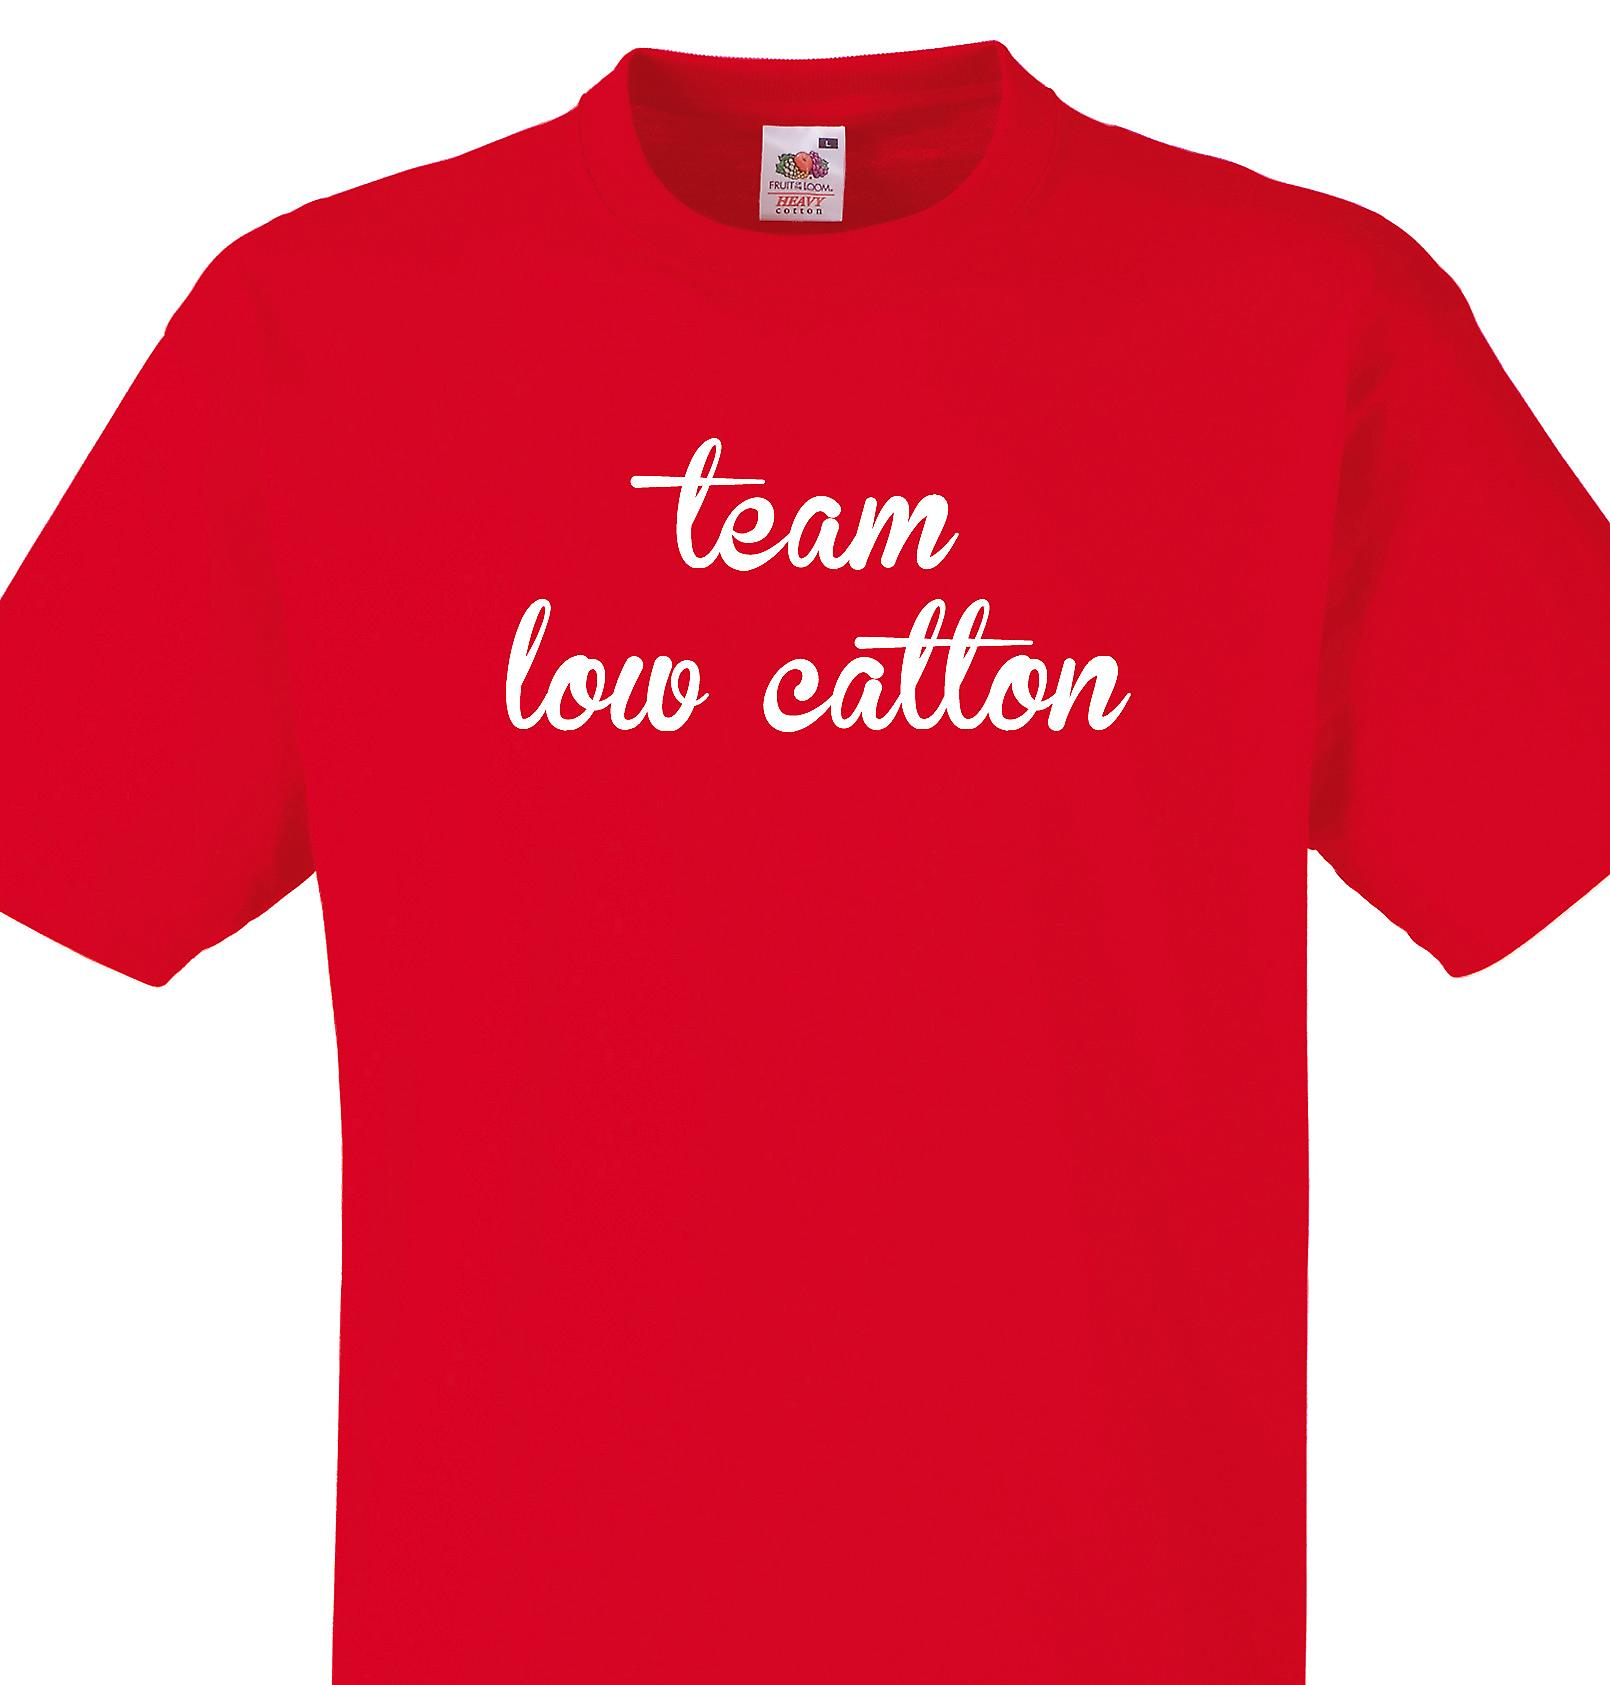 Team Low catton Red T shirt